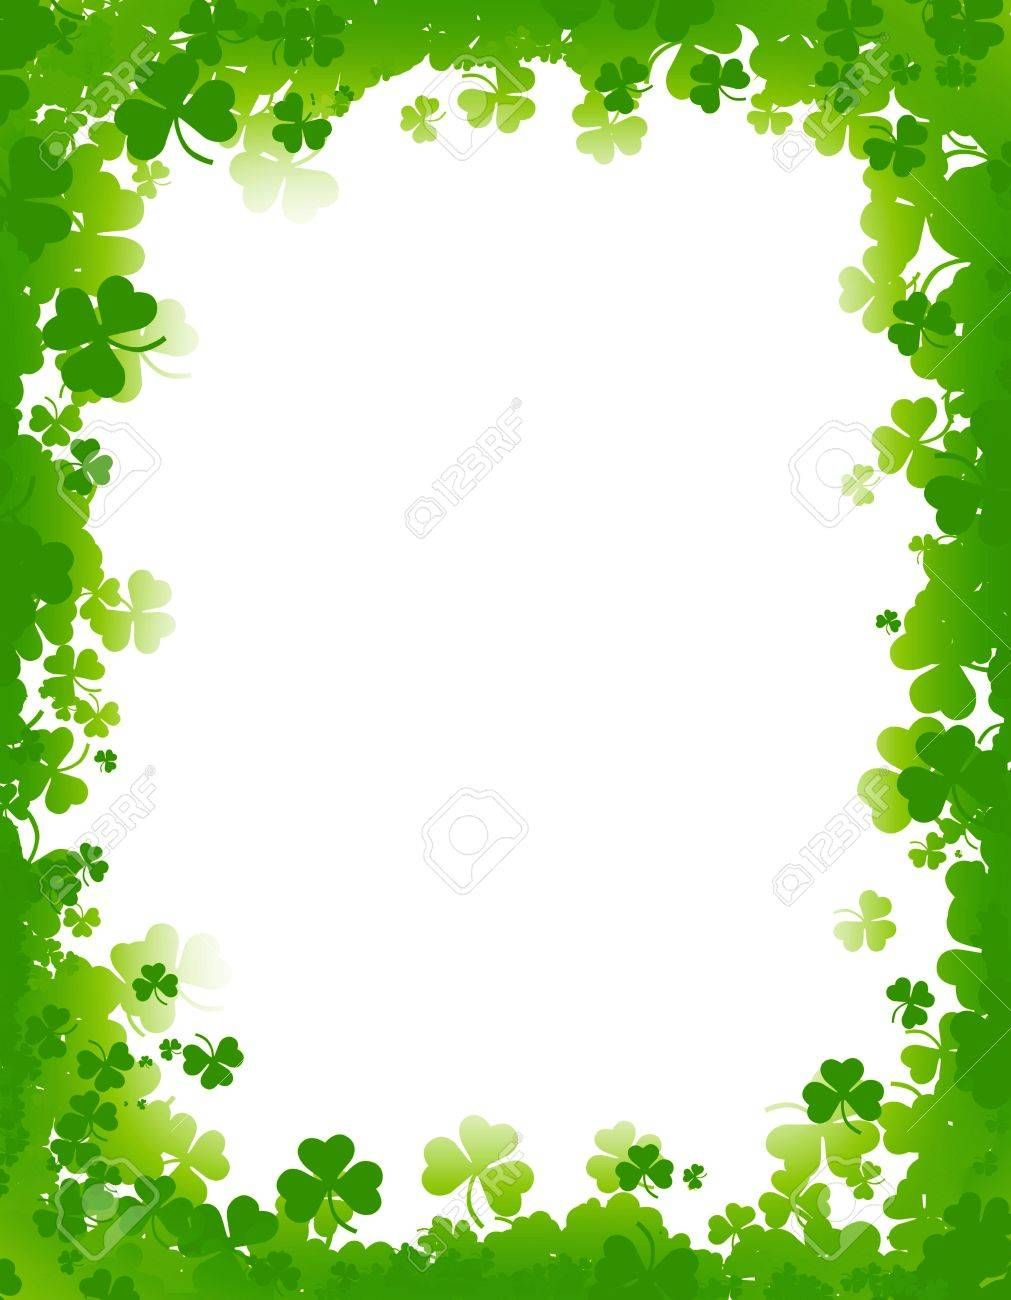 St Patricks Day Clipart Banners Borders Free Download St Patricks Day Clipart St Patricks Day Clover Green